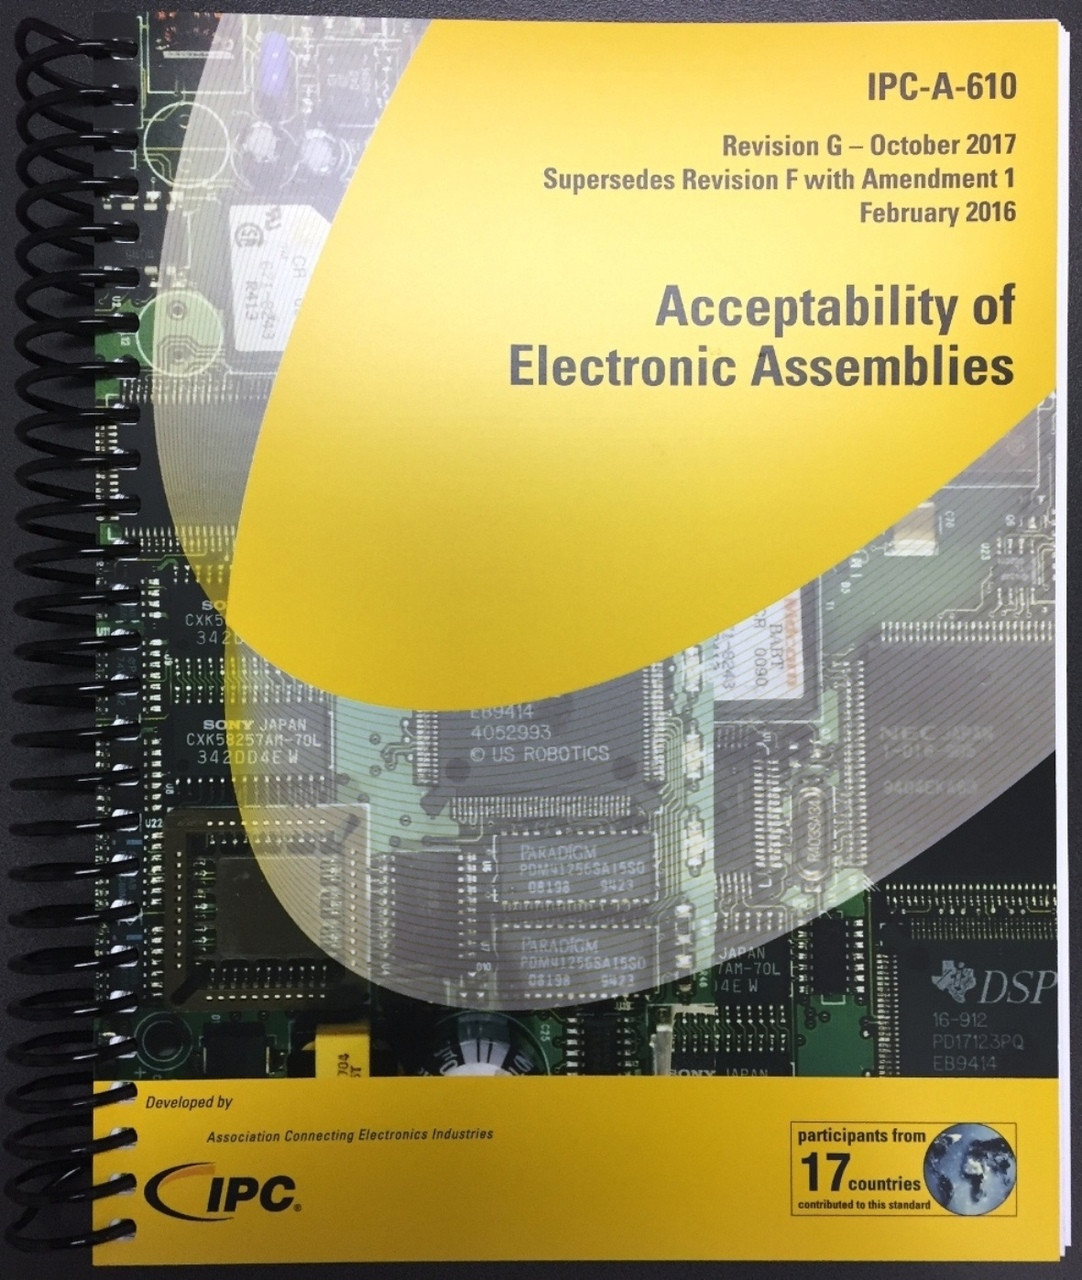 IPC-A-610D ACCEPTABILITY OF ELECTRONIC ASSEMBLIES PDF